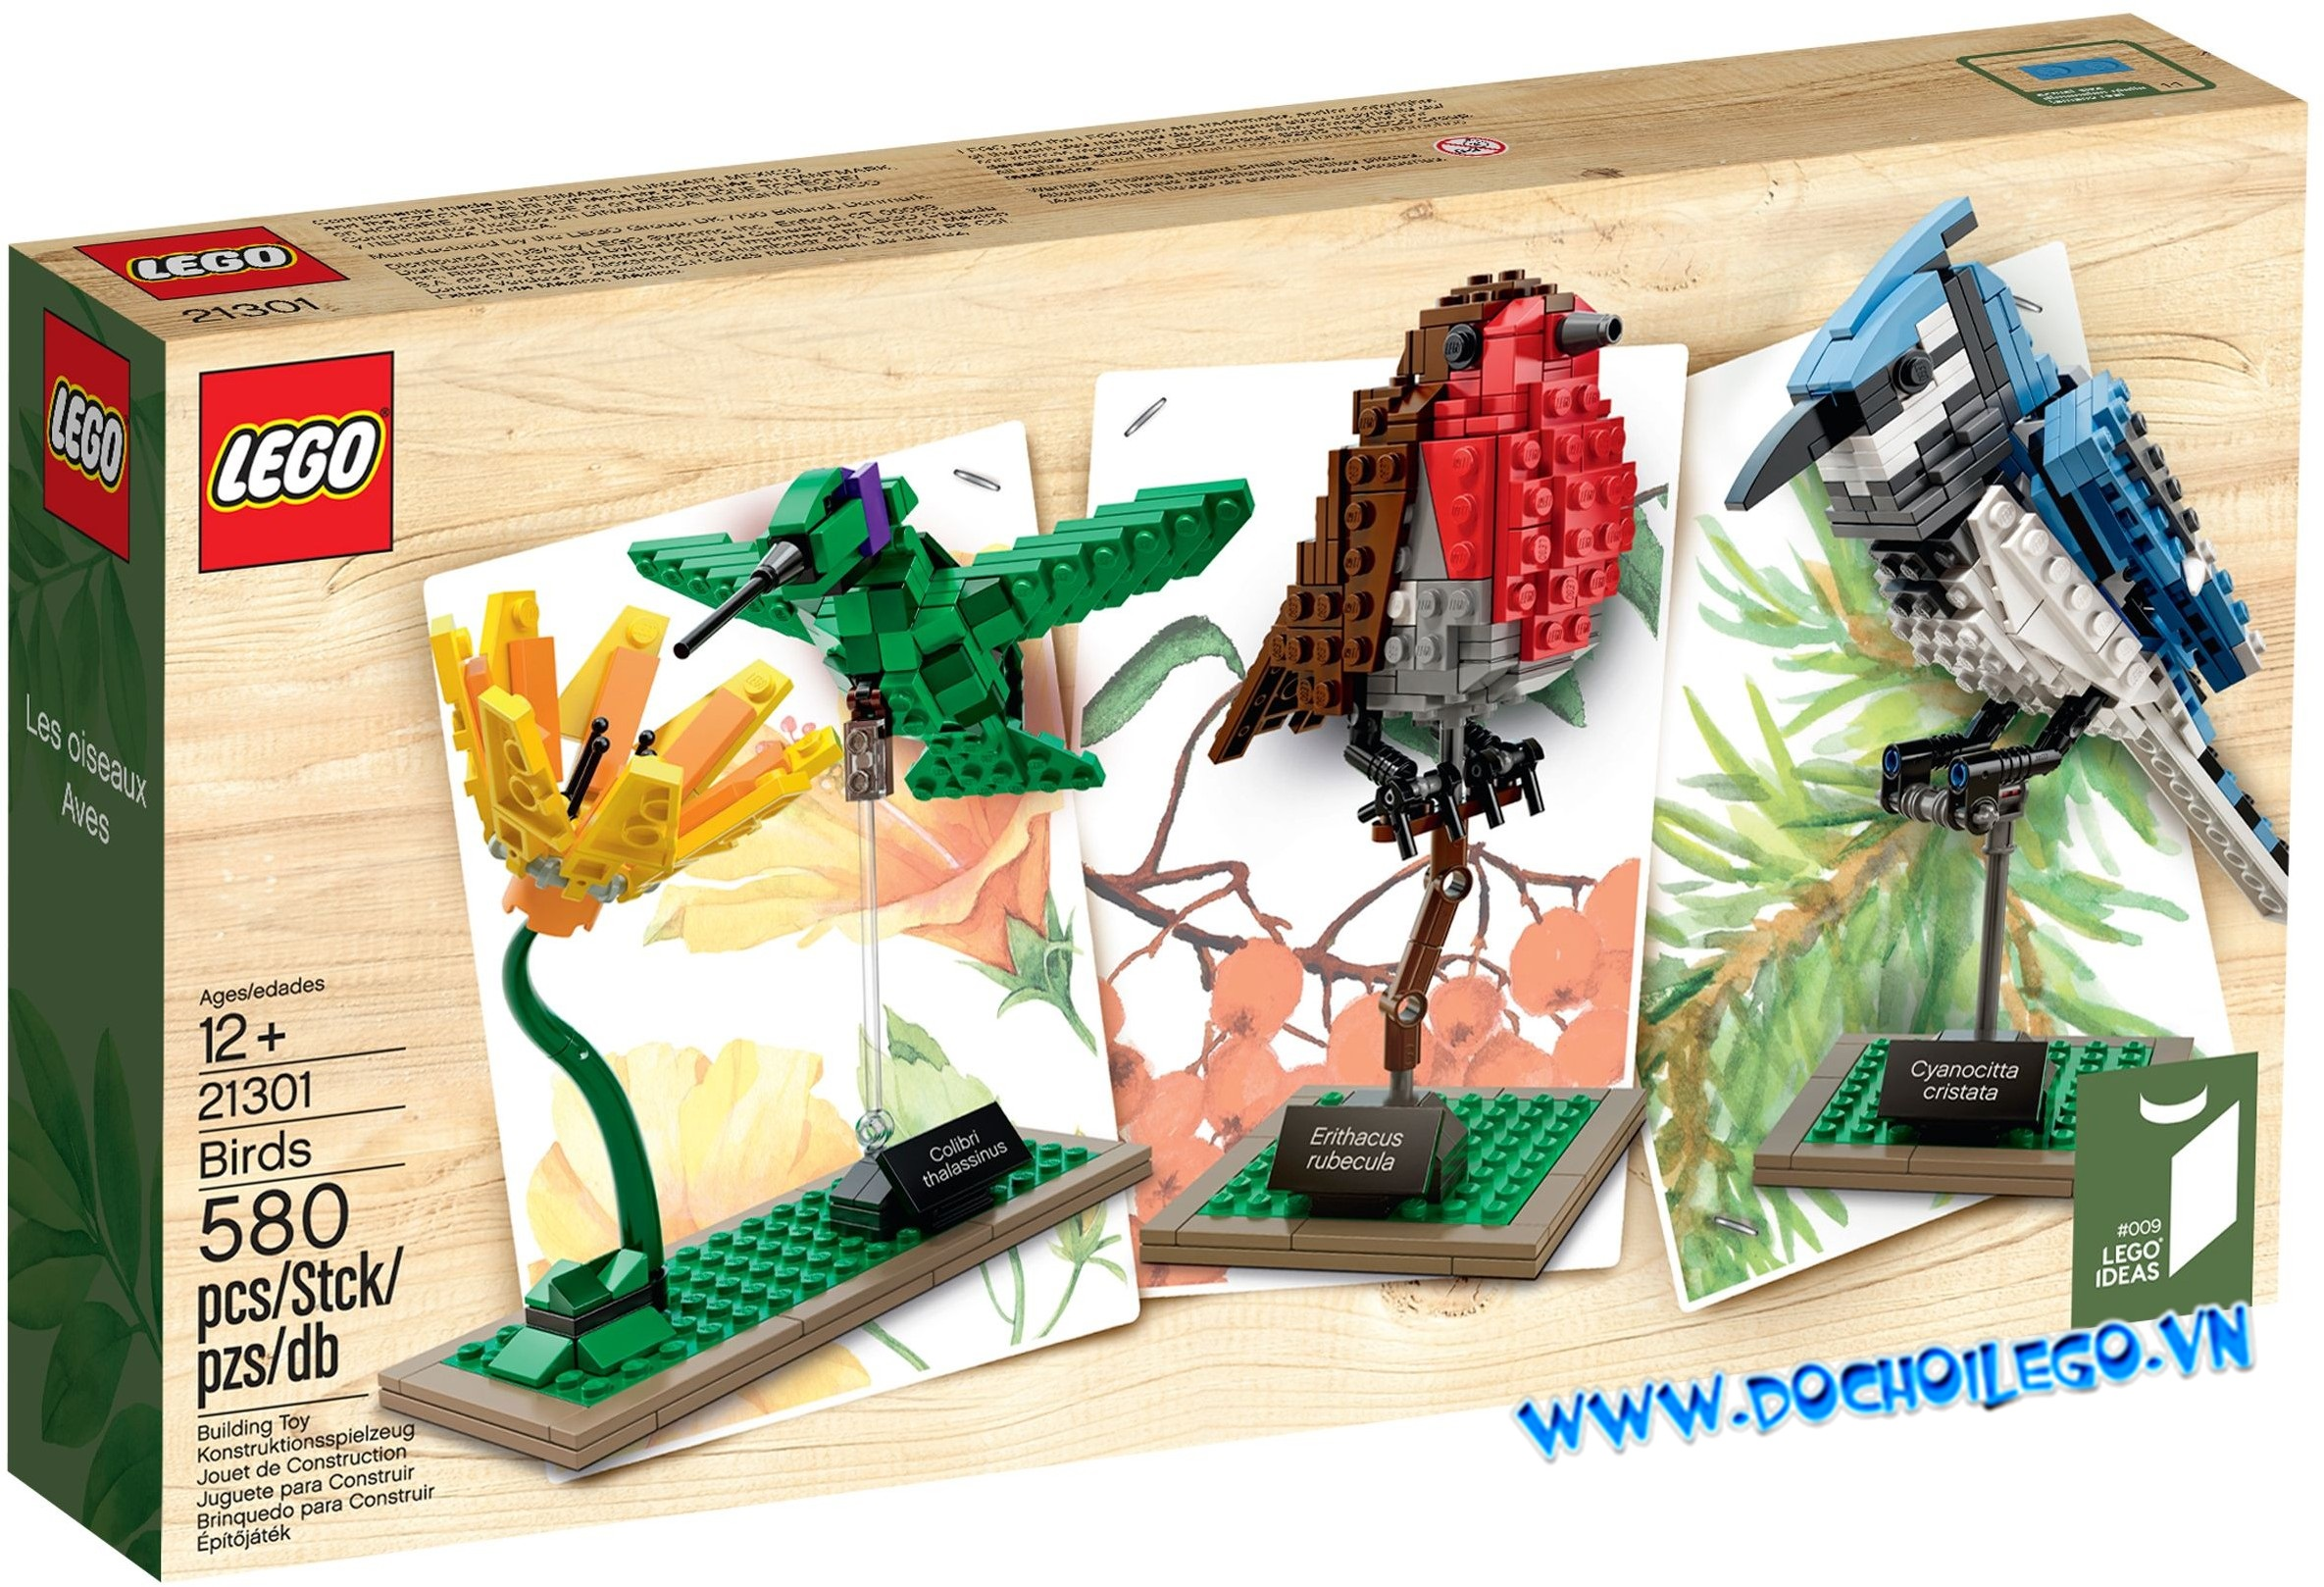 21301 LEGO® IDEAS Birds